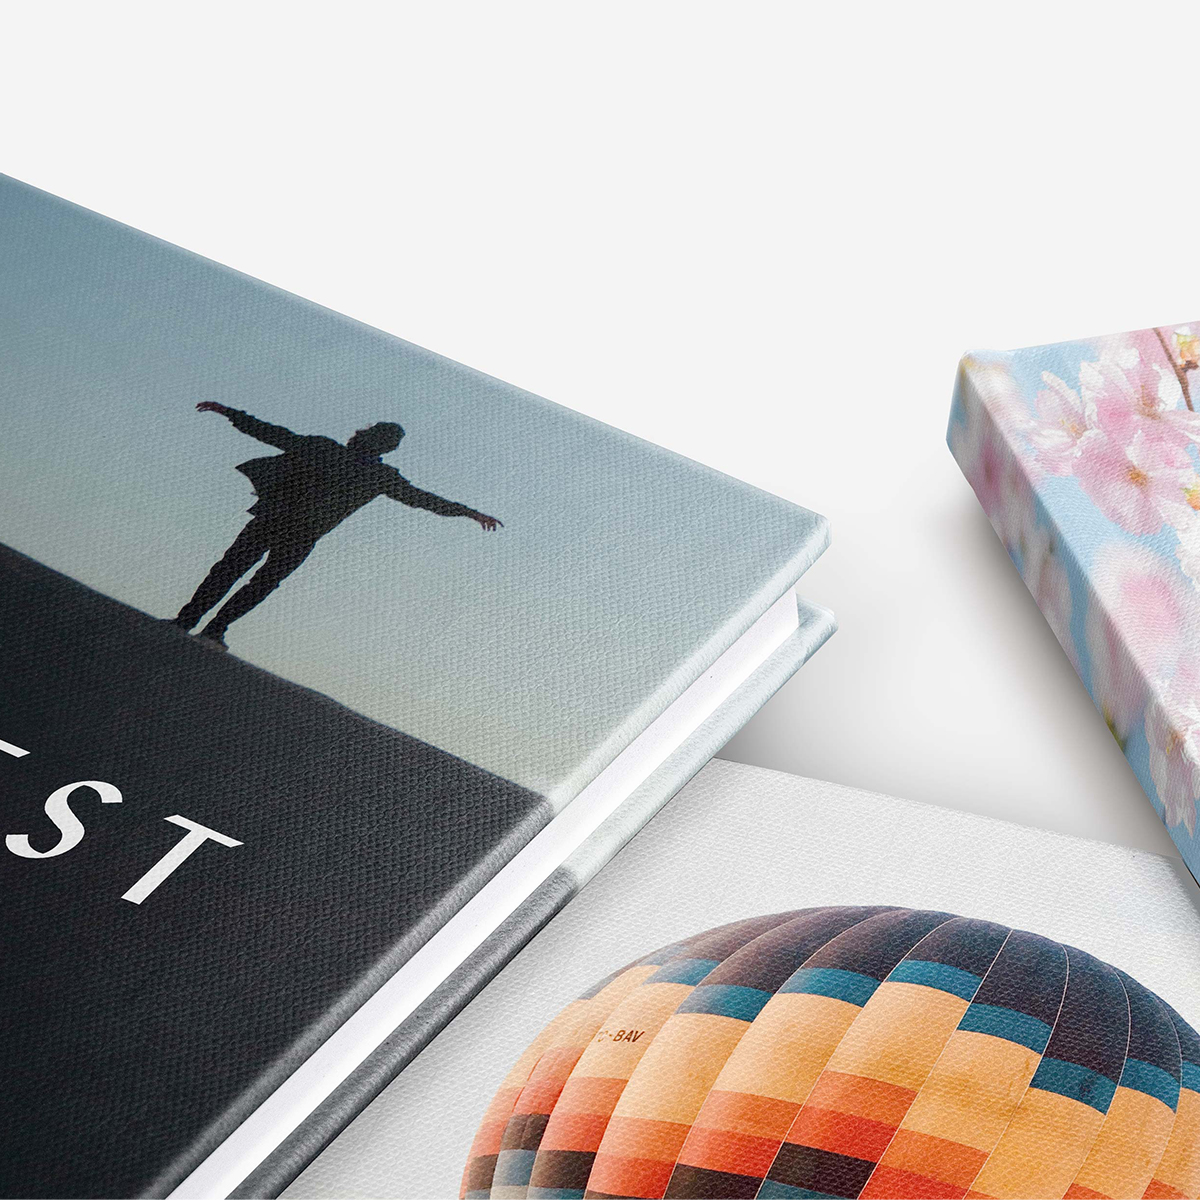 Zoomed in on covers of three Artifact Uprising Photo-Wrapped Hardcover Books showing the high quality results of the press printing process